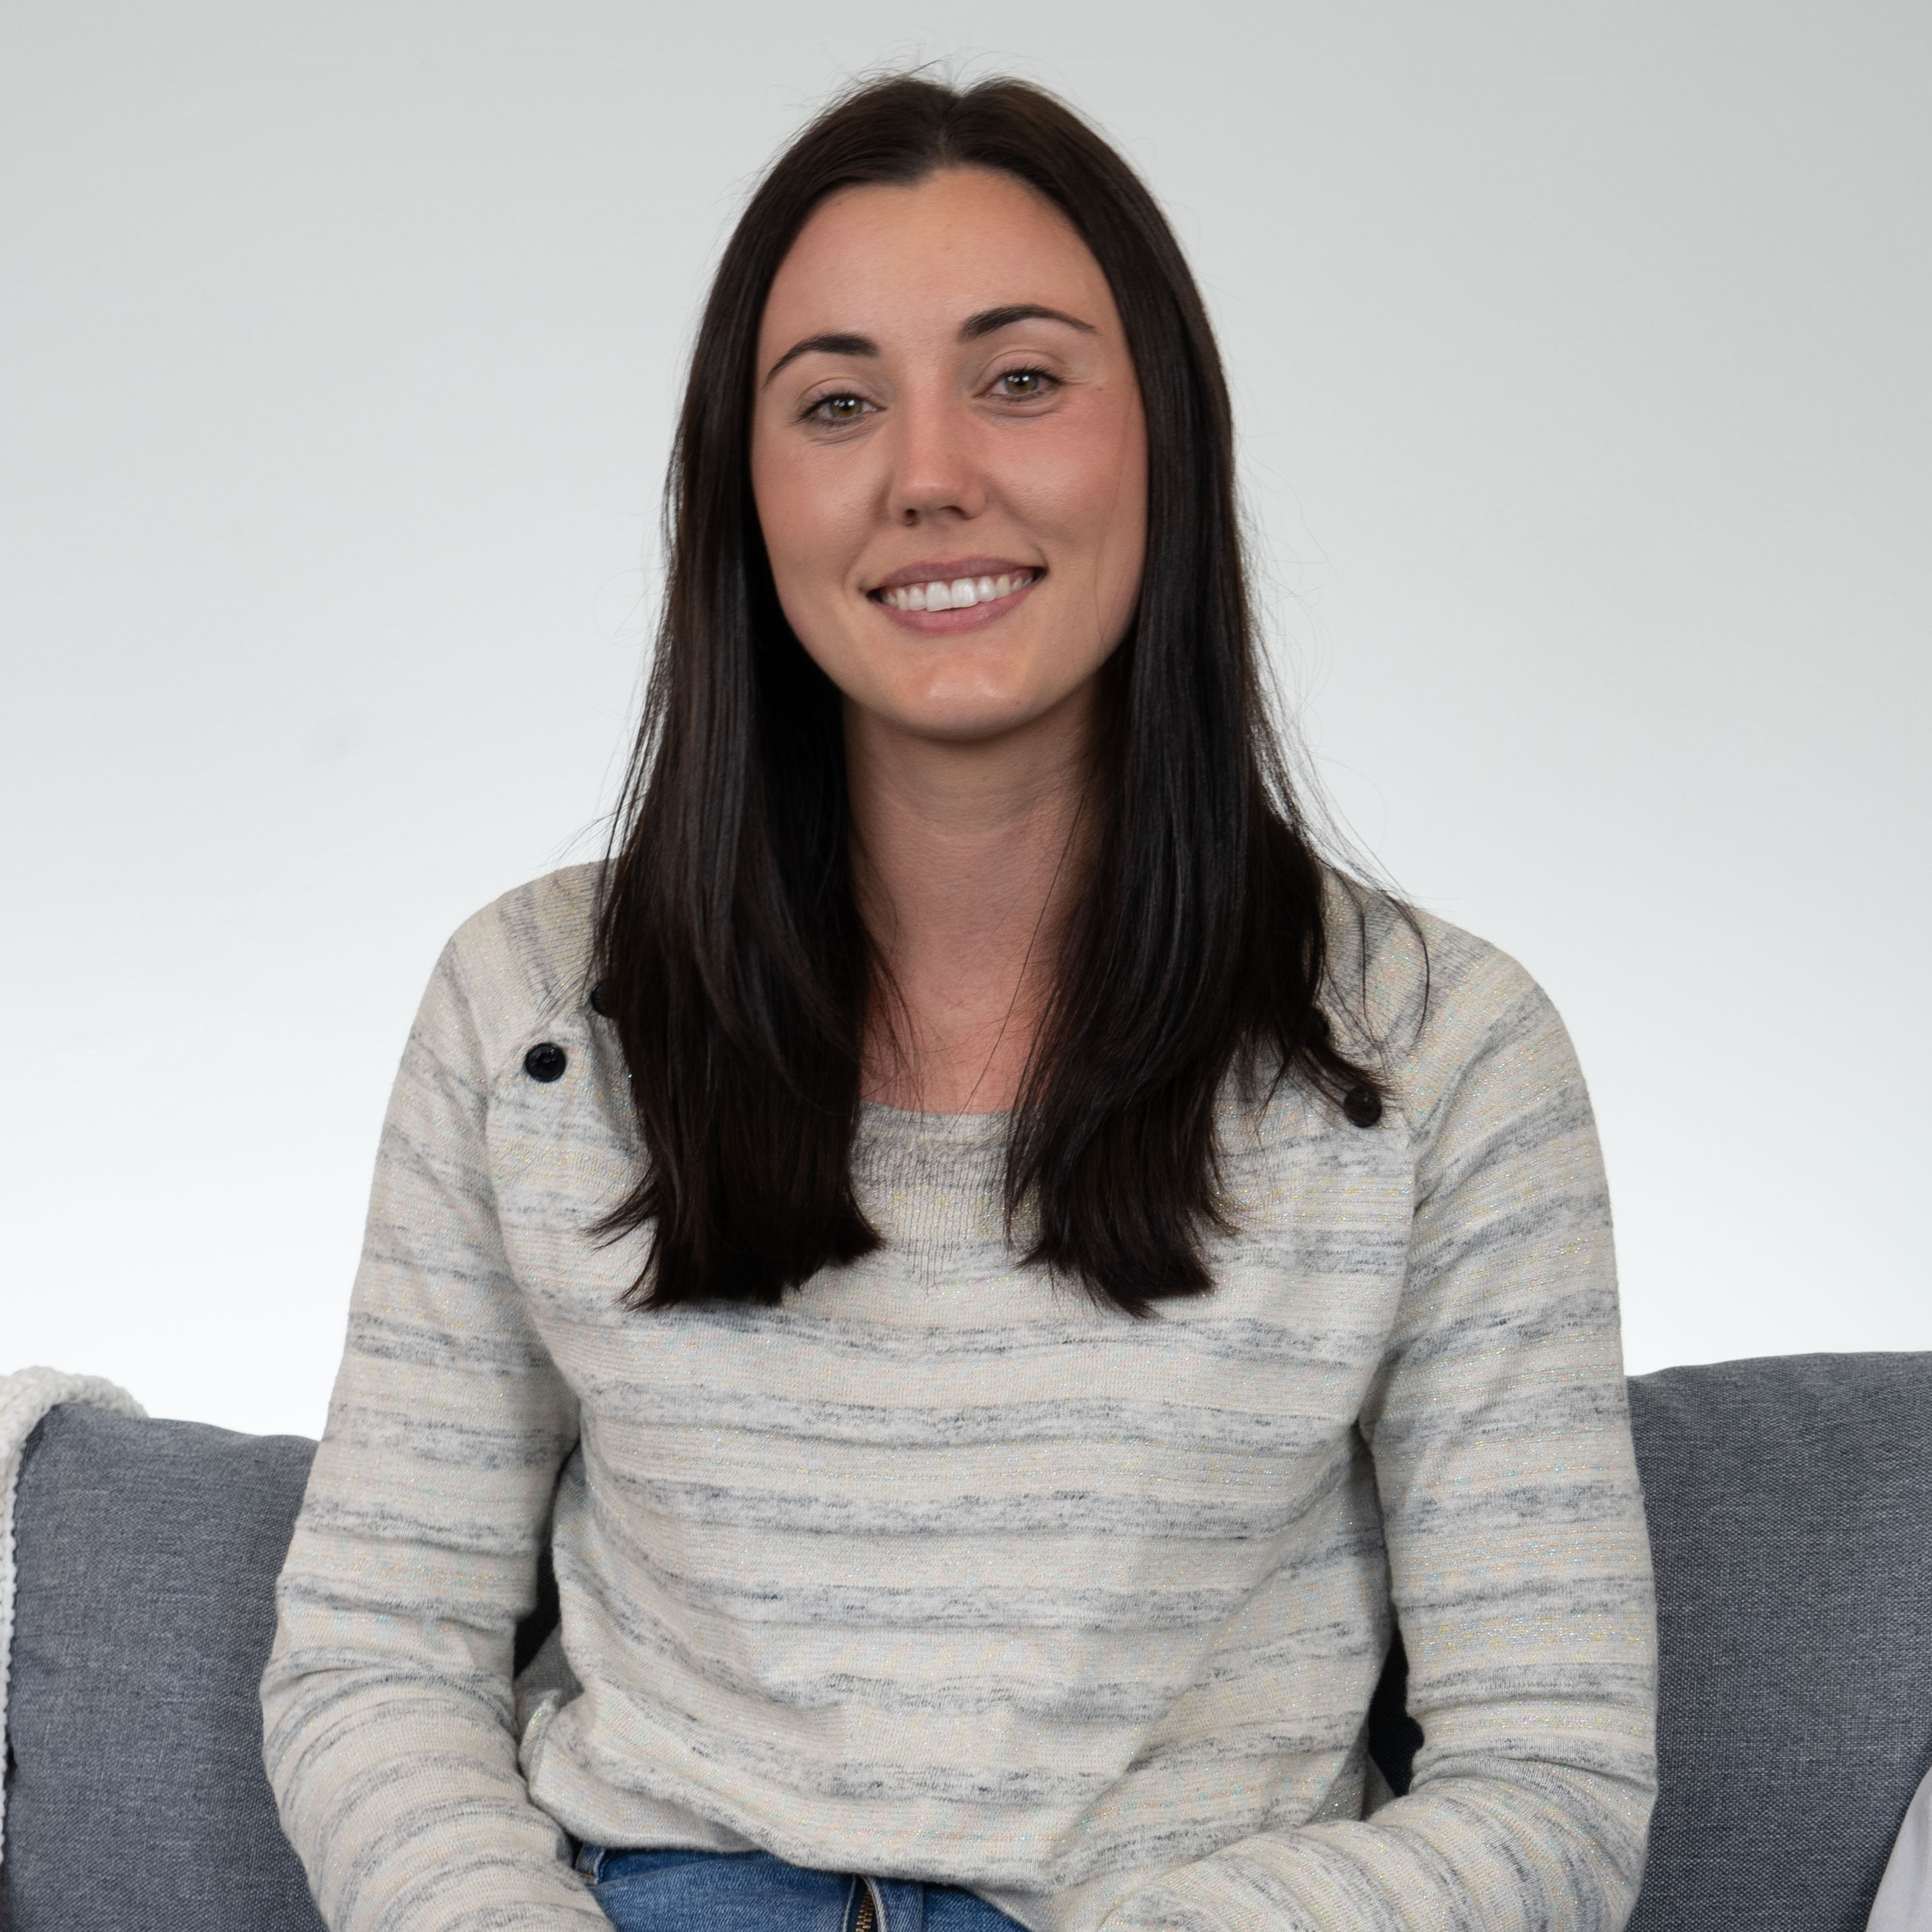 The Impact of Food on Your Health & Wellbeing | Interview with Dietitian & Nutritionist Claudia Cramer